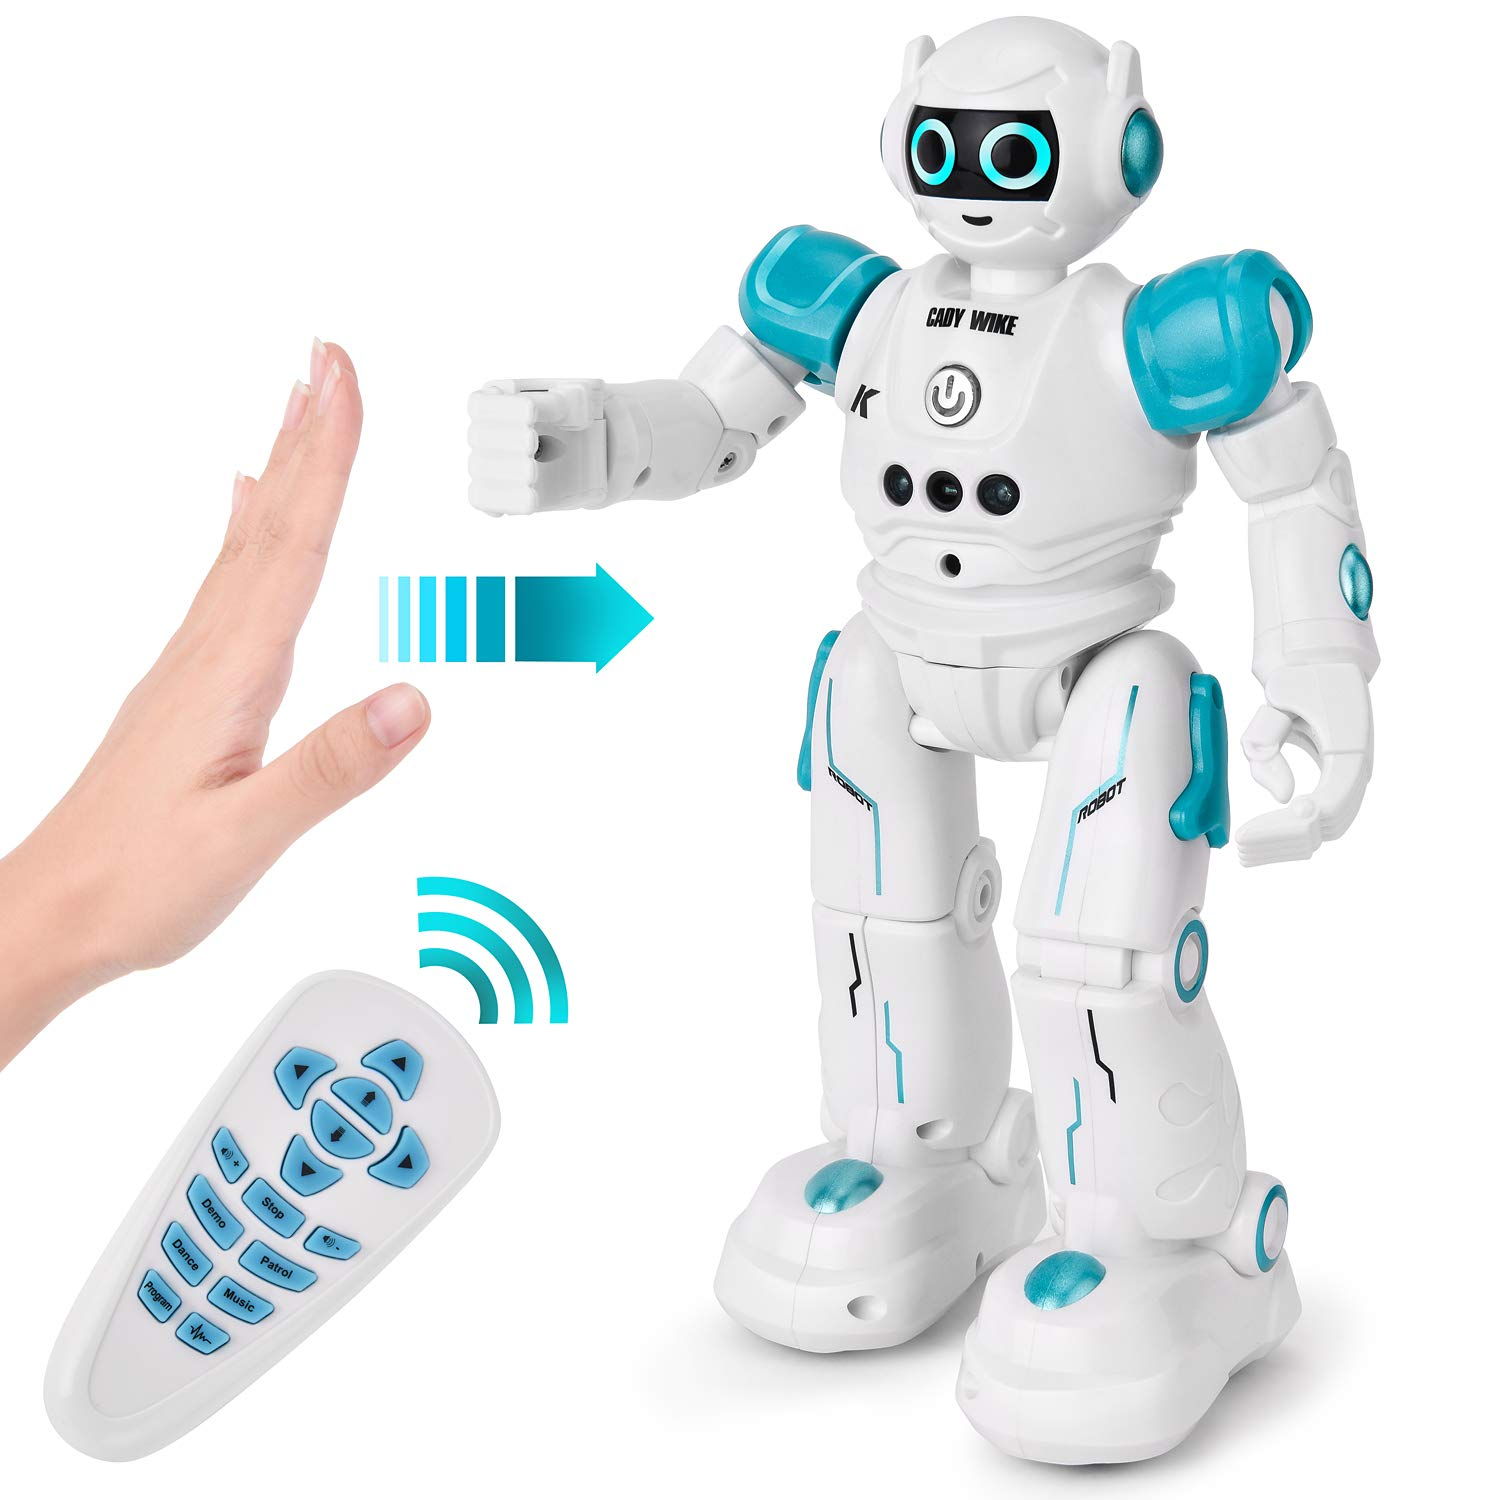 ROOYA BABY RC Robot for Kids Remote Control Robot Toys Programmable Educational Robotics for Boys Girls Birthday Gift Present, Dancing, Singing, Led Eyes, Gesture Sensing Robot Kit (Robot Toy A) by ROOYA BABY (Image #1)